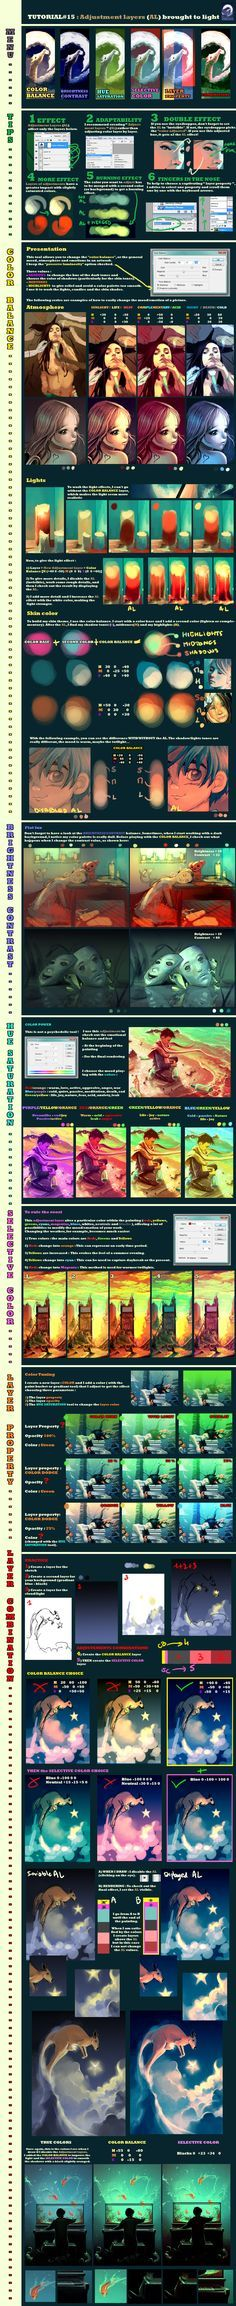 Tutorial 15 Adjustment layers brought to light by `AquaSixio on deviantART